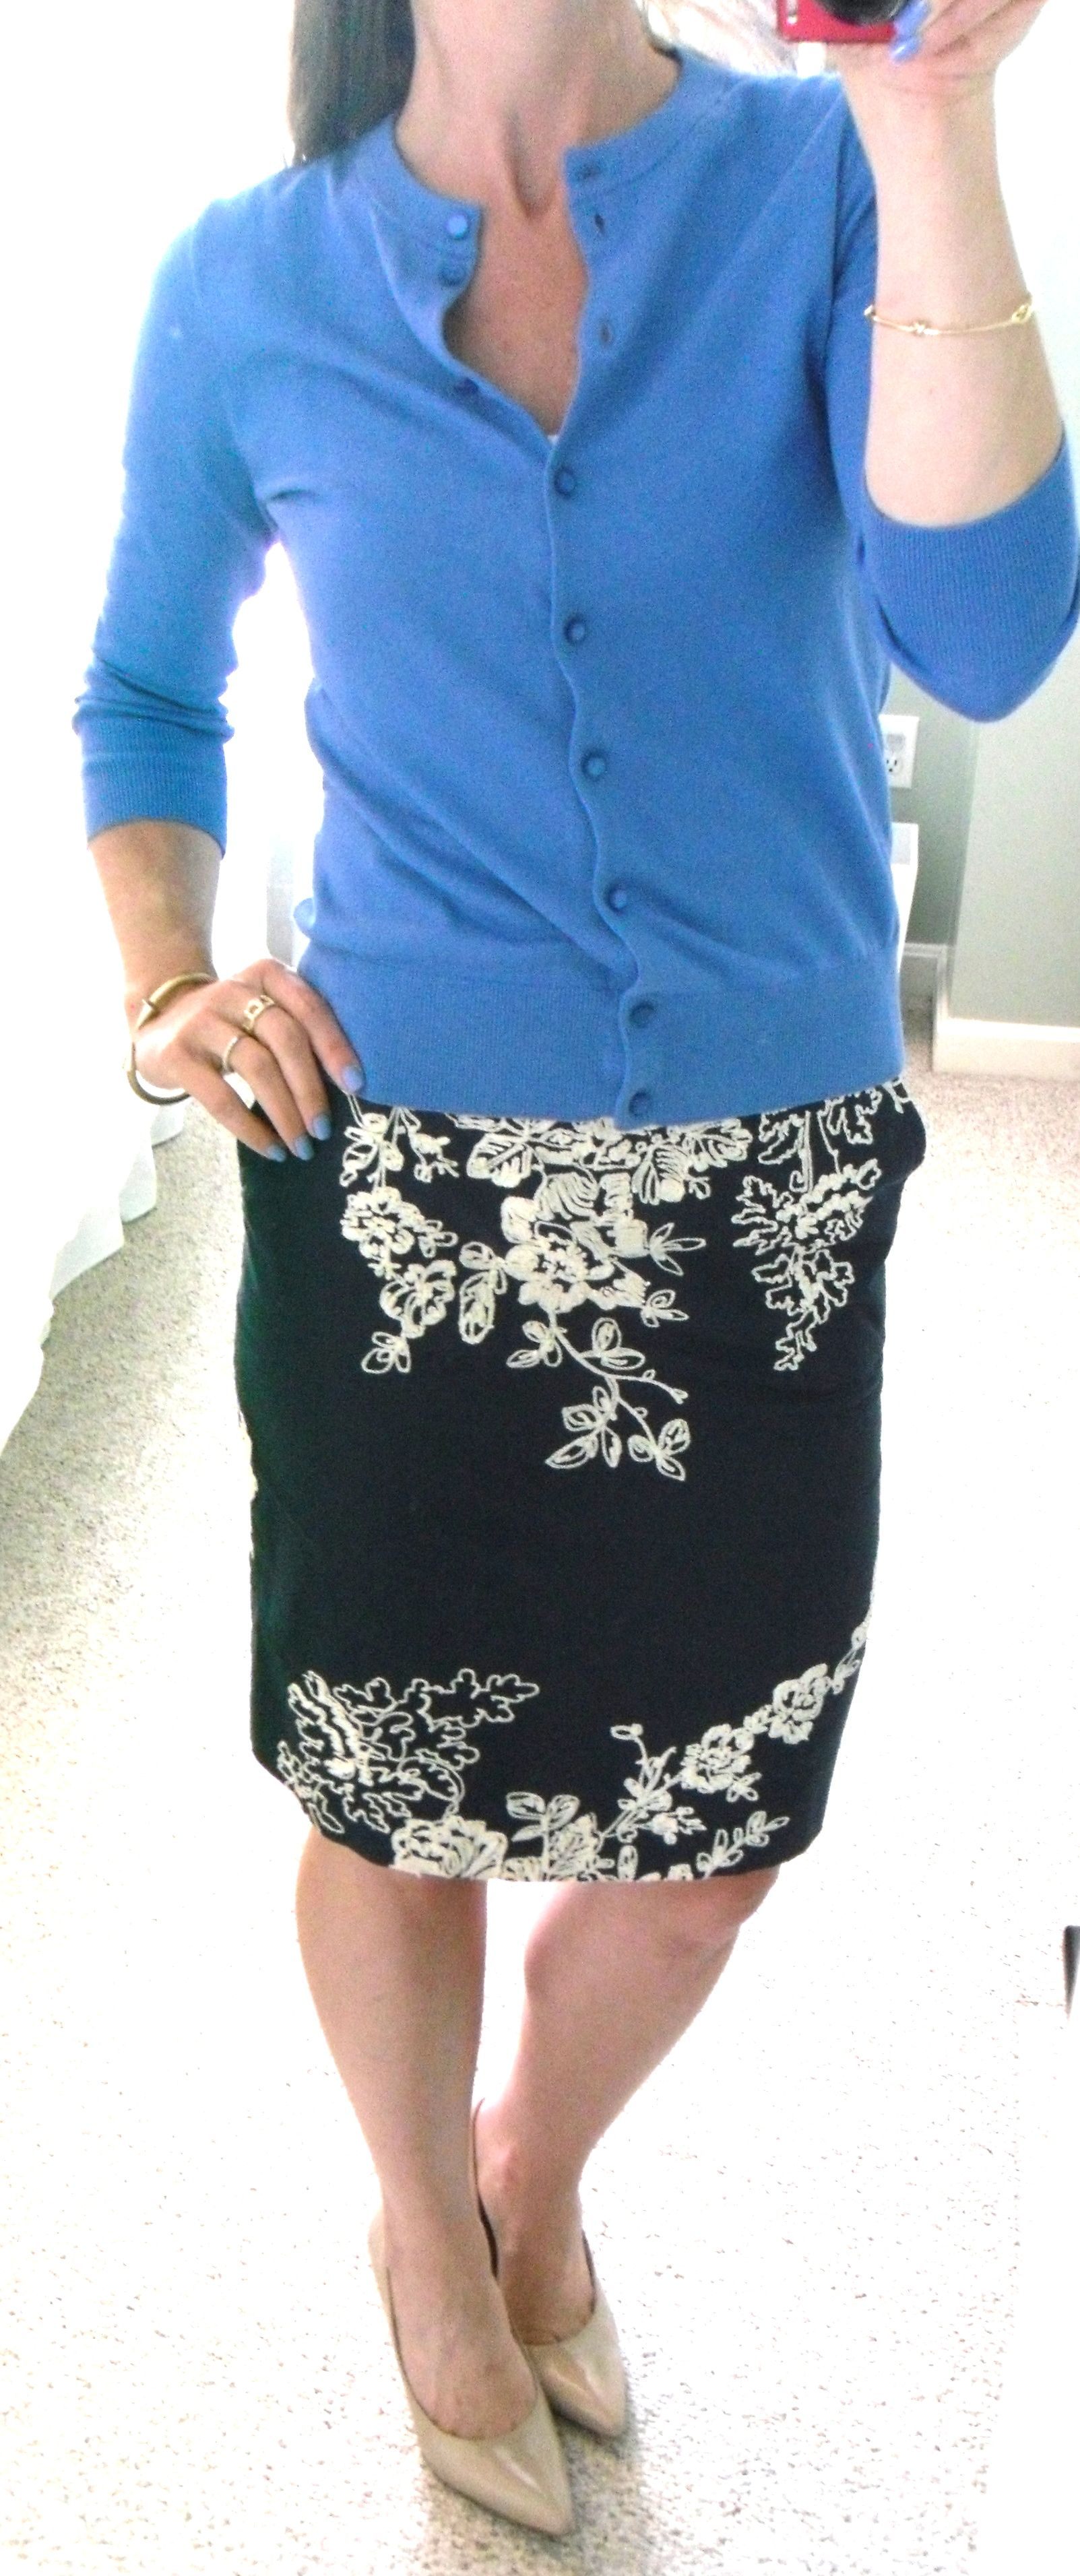 8bc6c71db J. Crew Factory blue cardigan and navy embroidered floral pencil skirt,  nude pumps